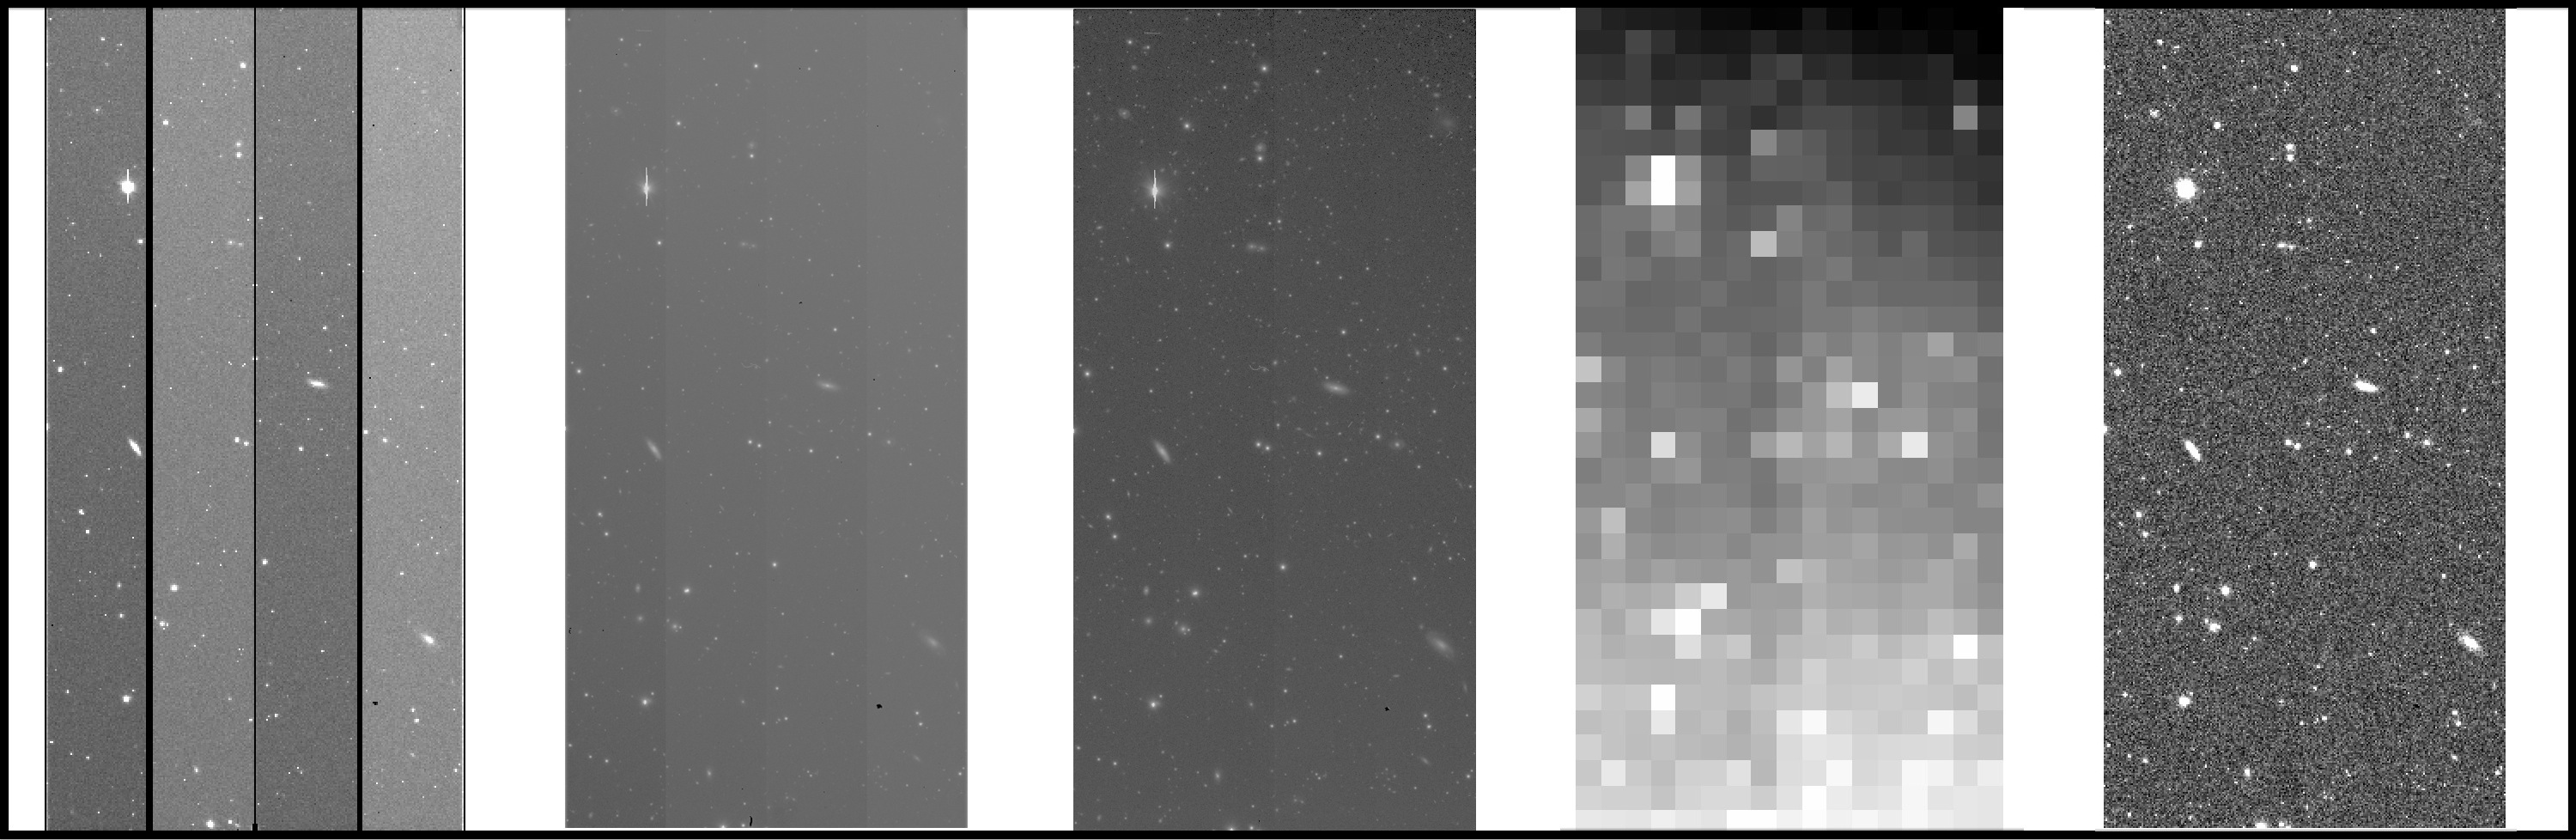 a series of processed CCD images